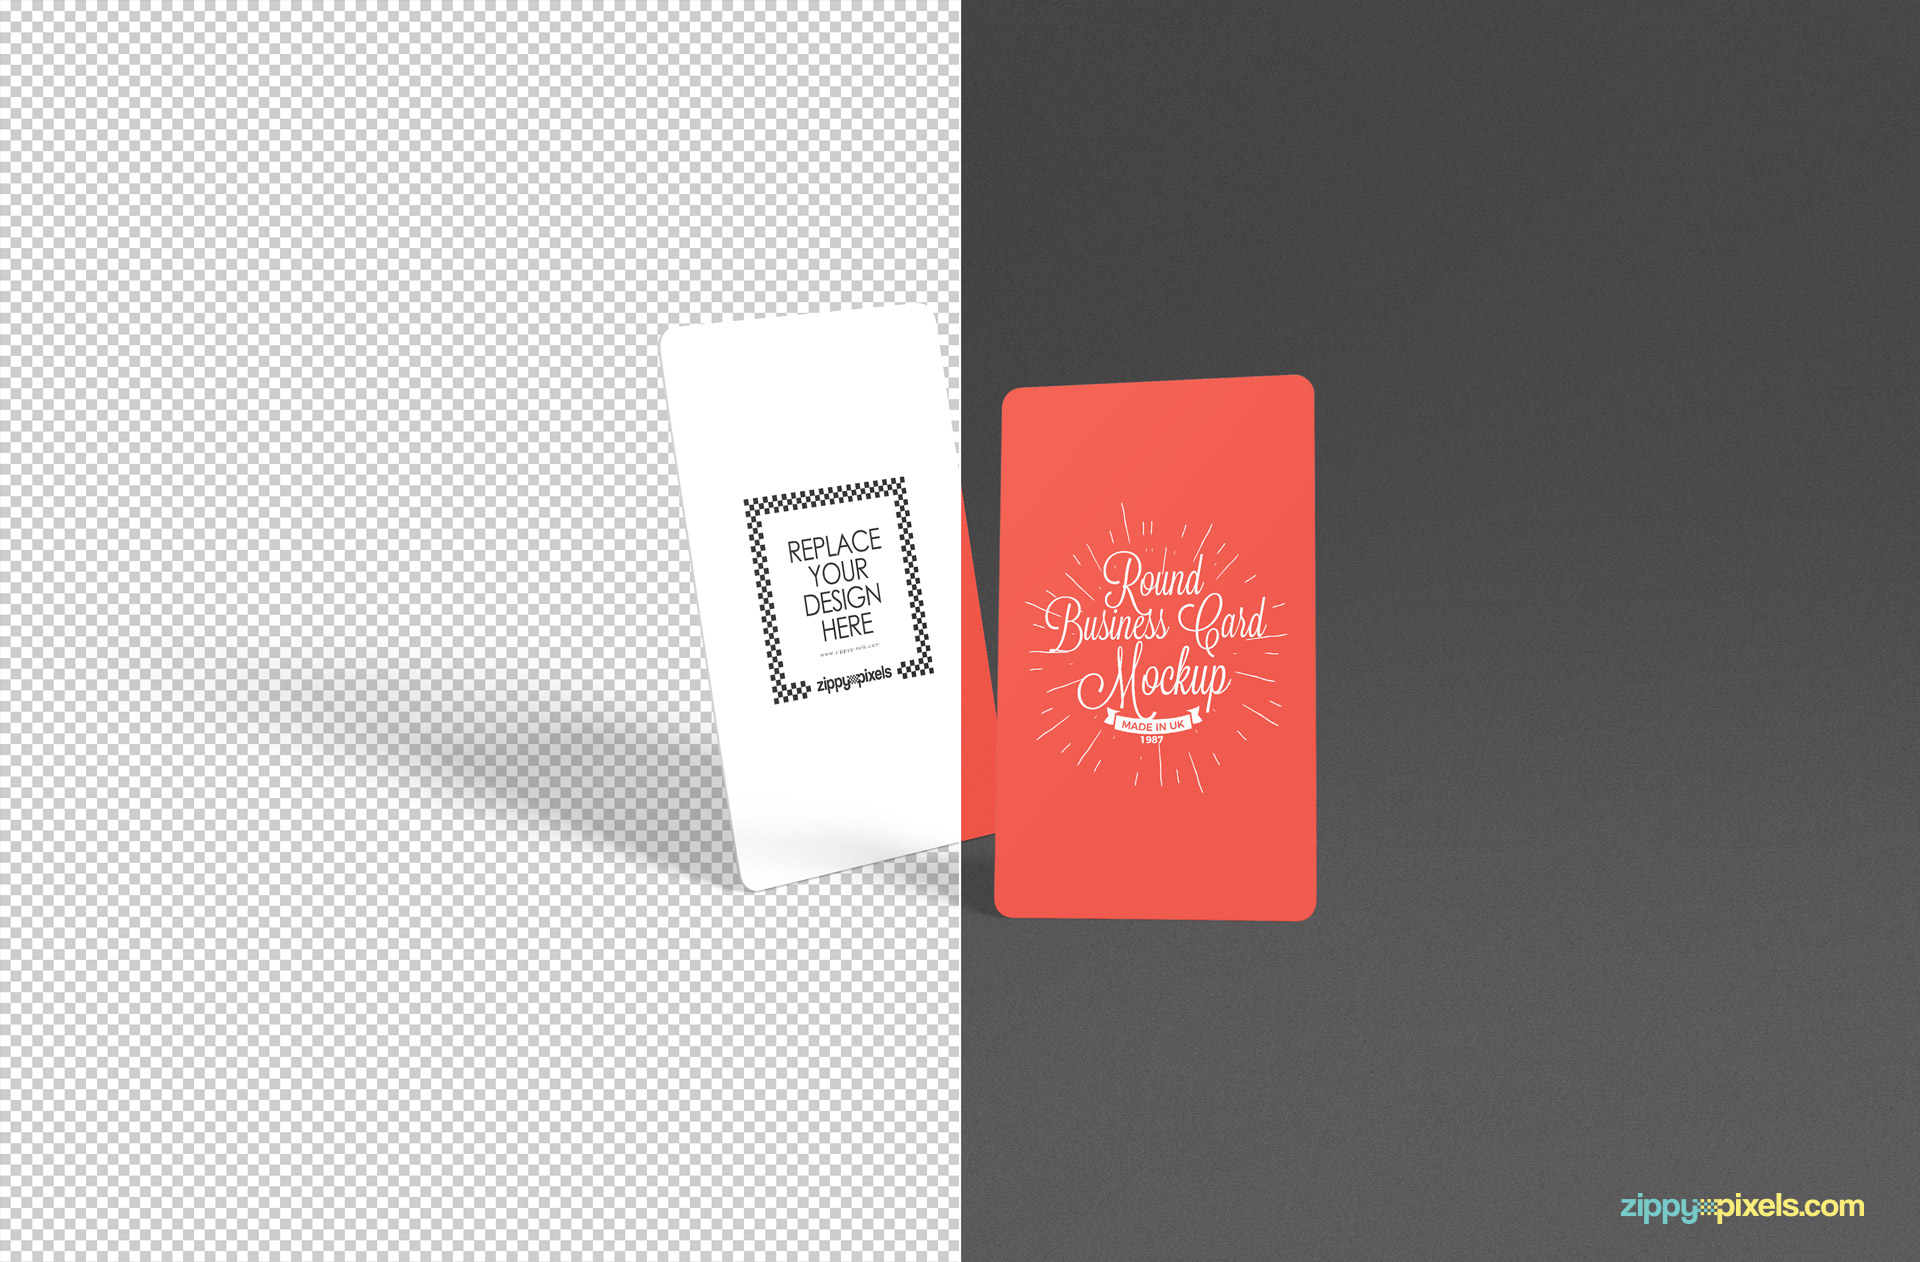 Highly customizable stylish free business card mockup